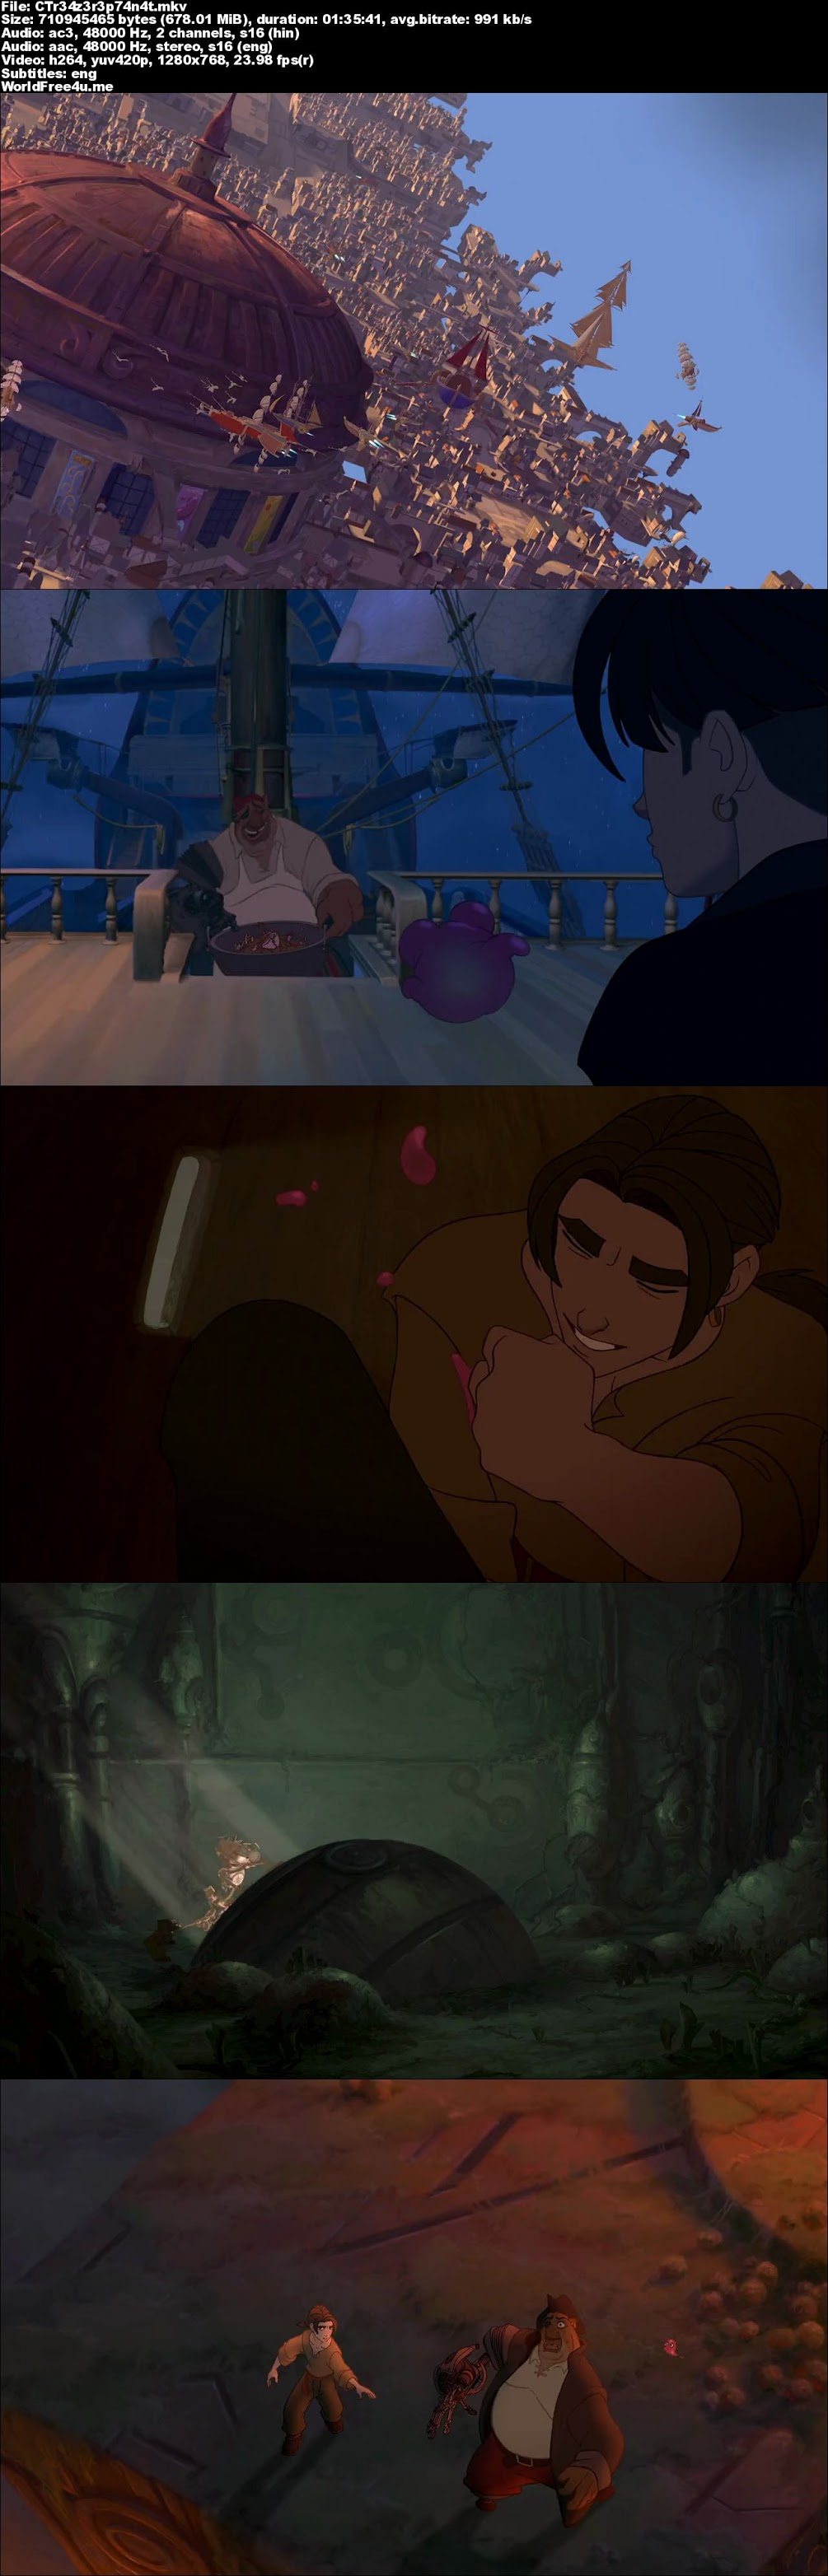 Screen Shot Of Treasure Planet 2002 In Hindi English Dual Audio Bluray 720P